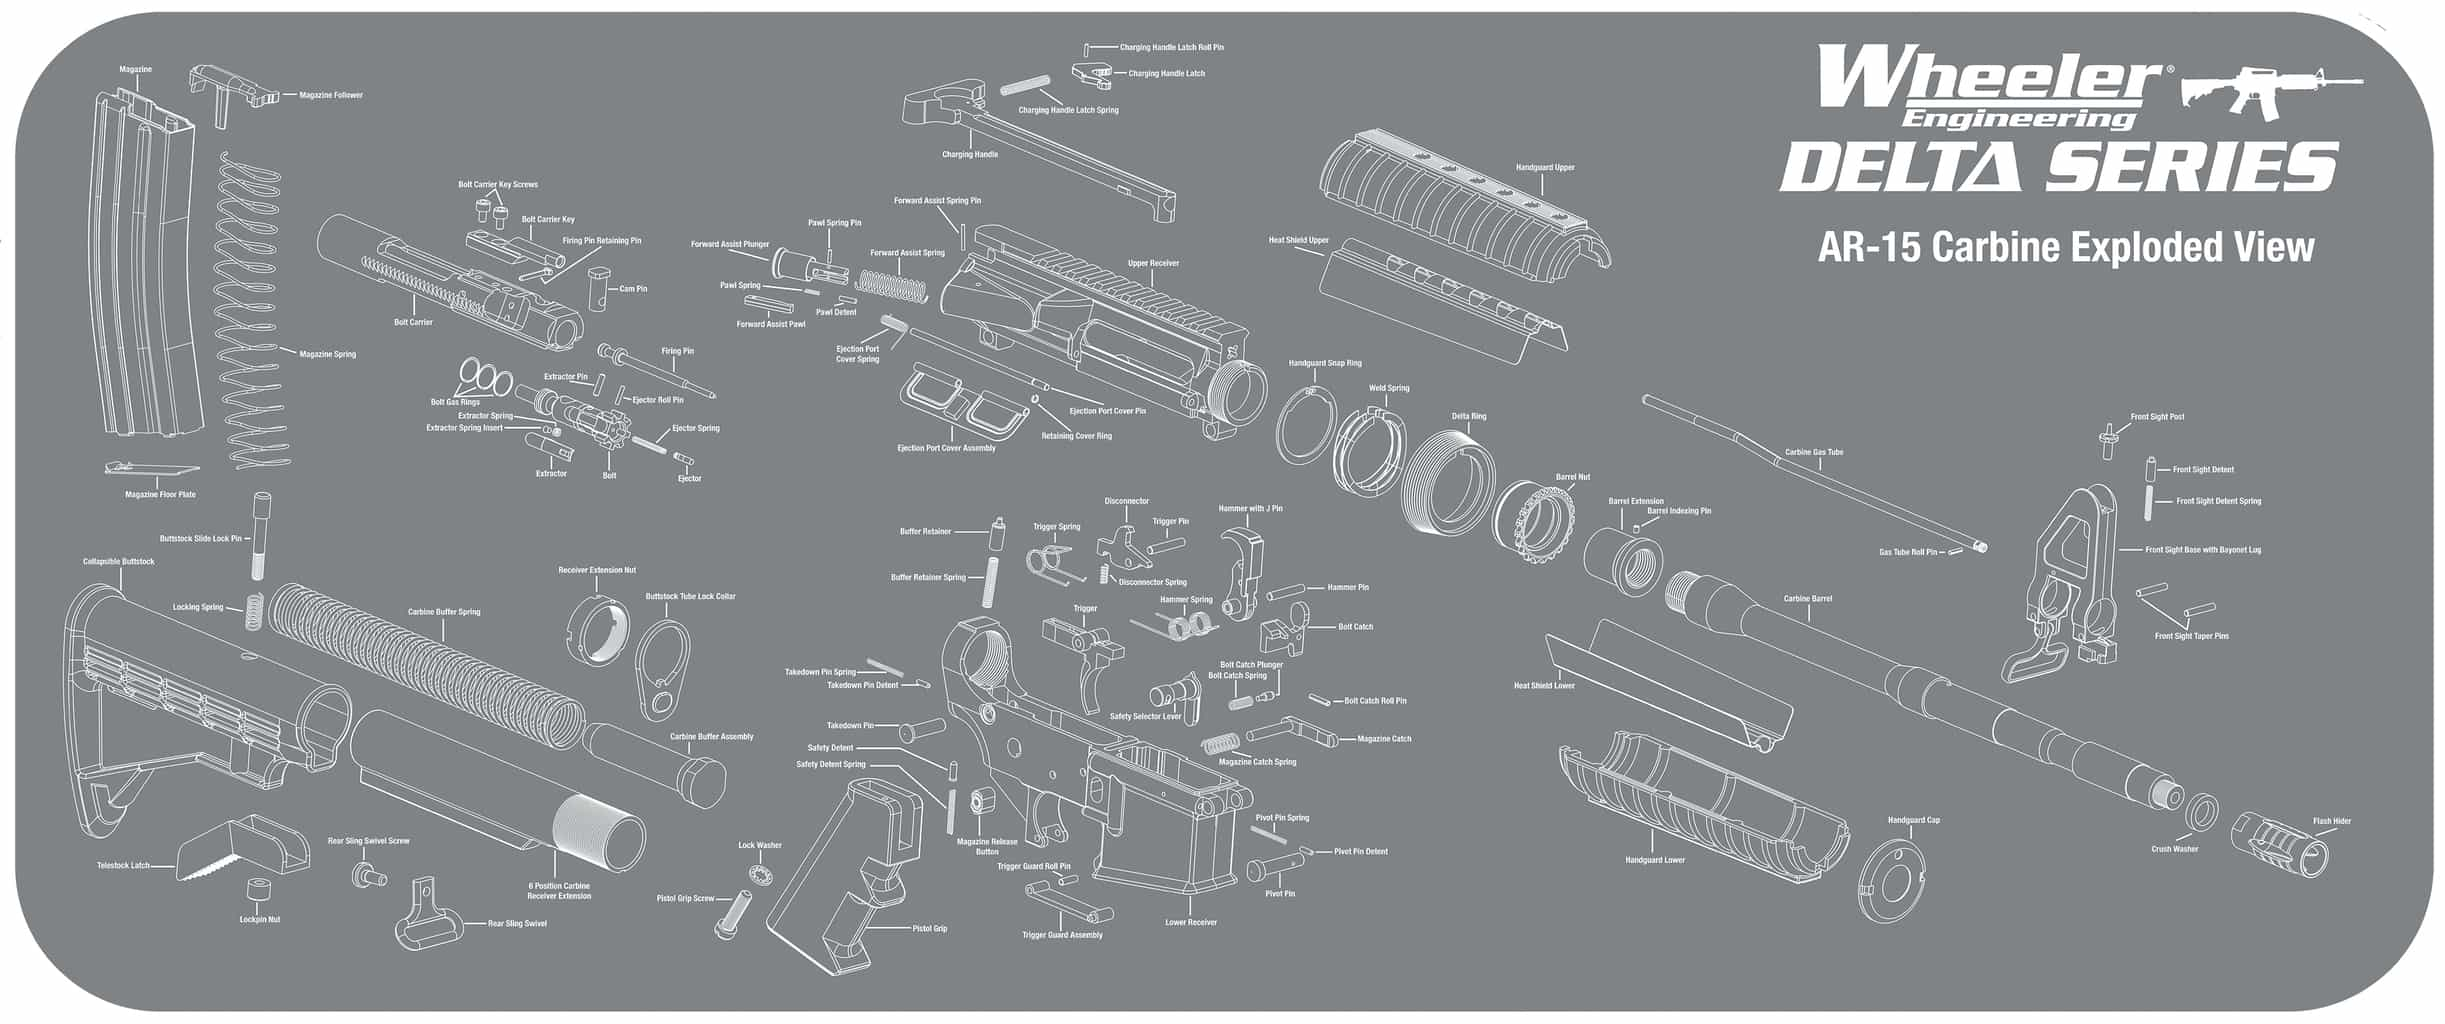 AR Armorer's Ultra Kit - 156824 flat schematic